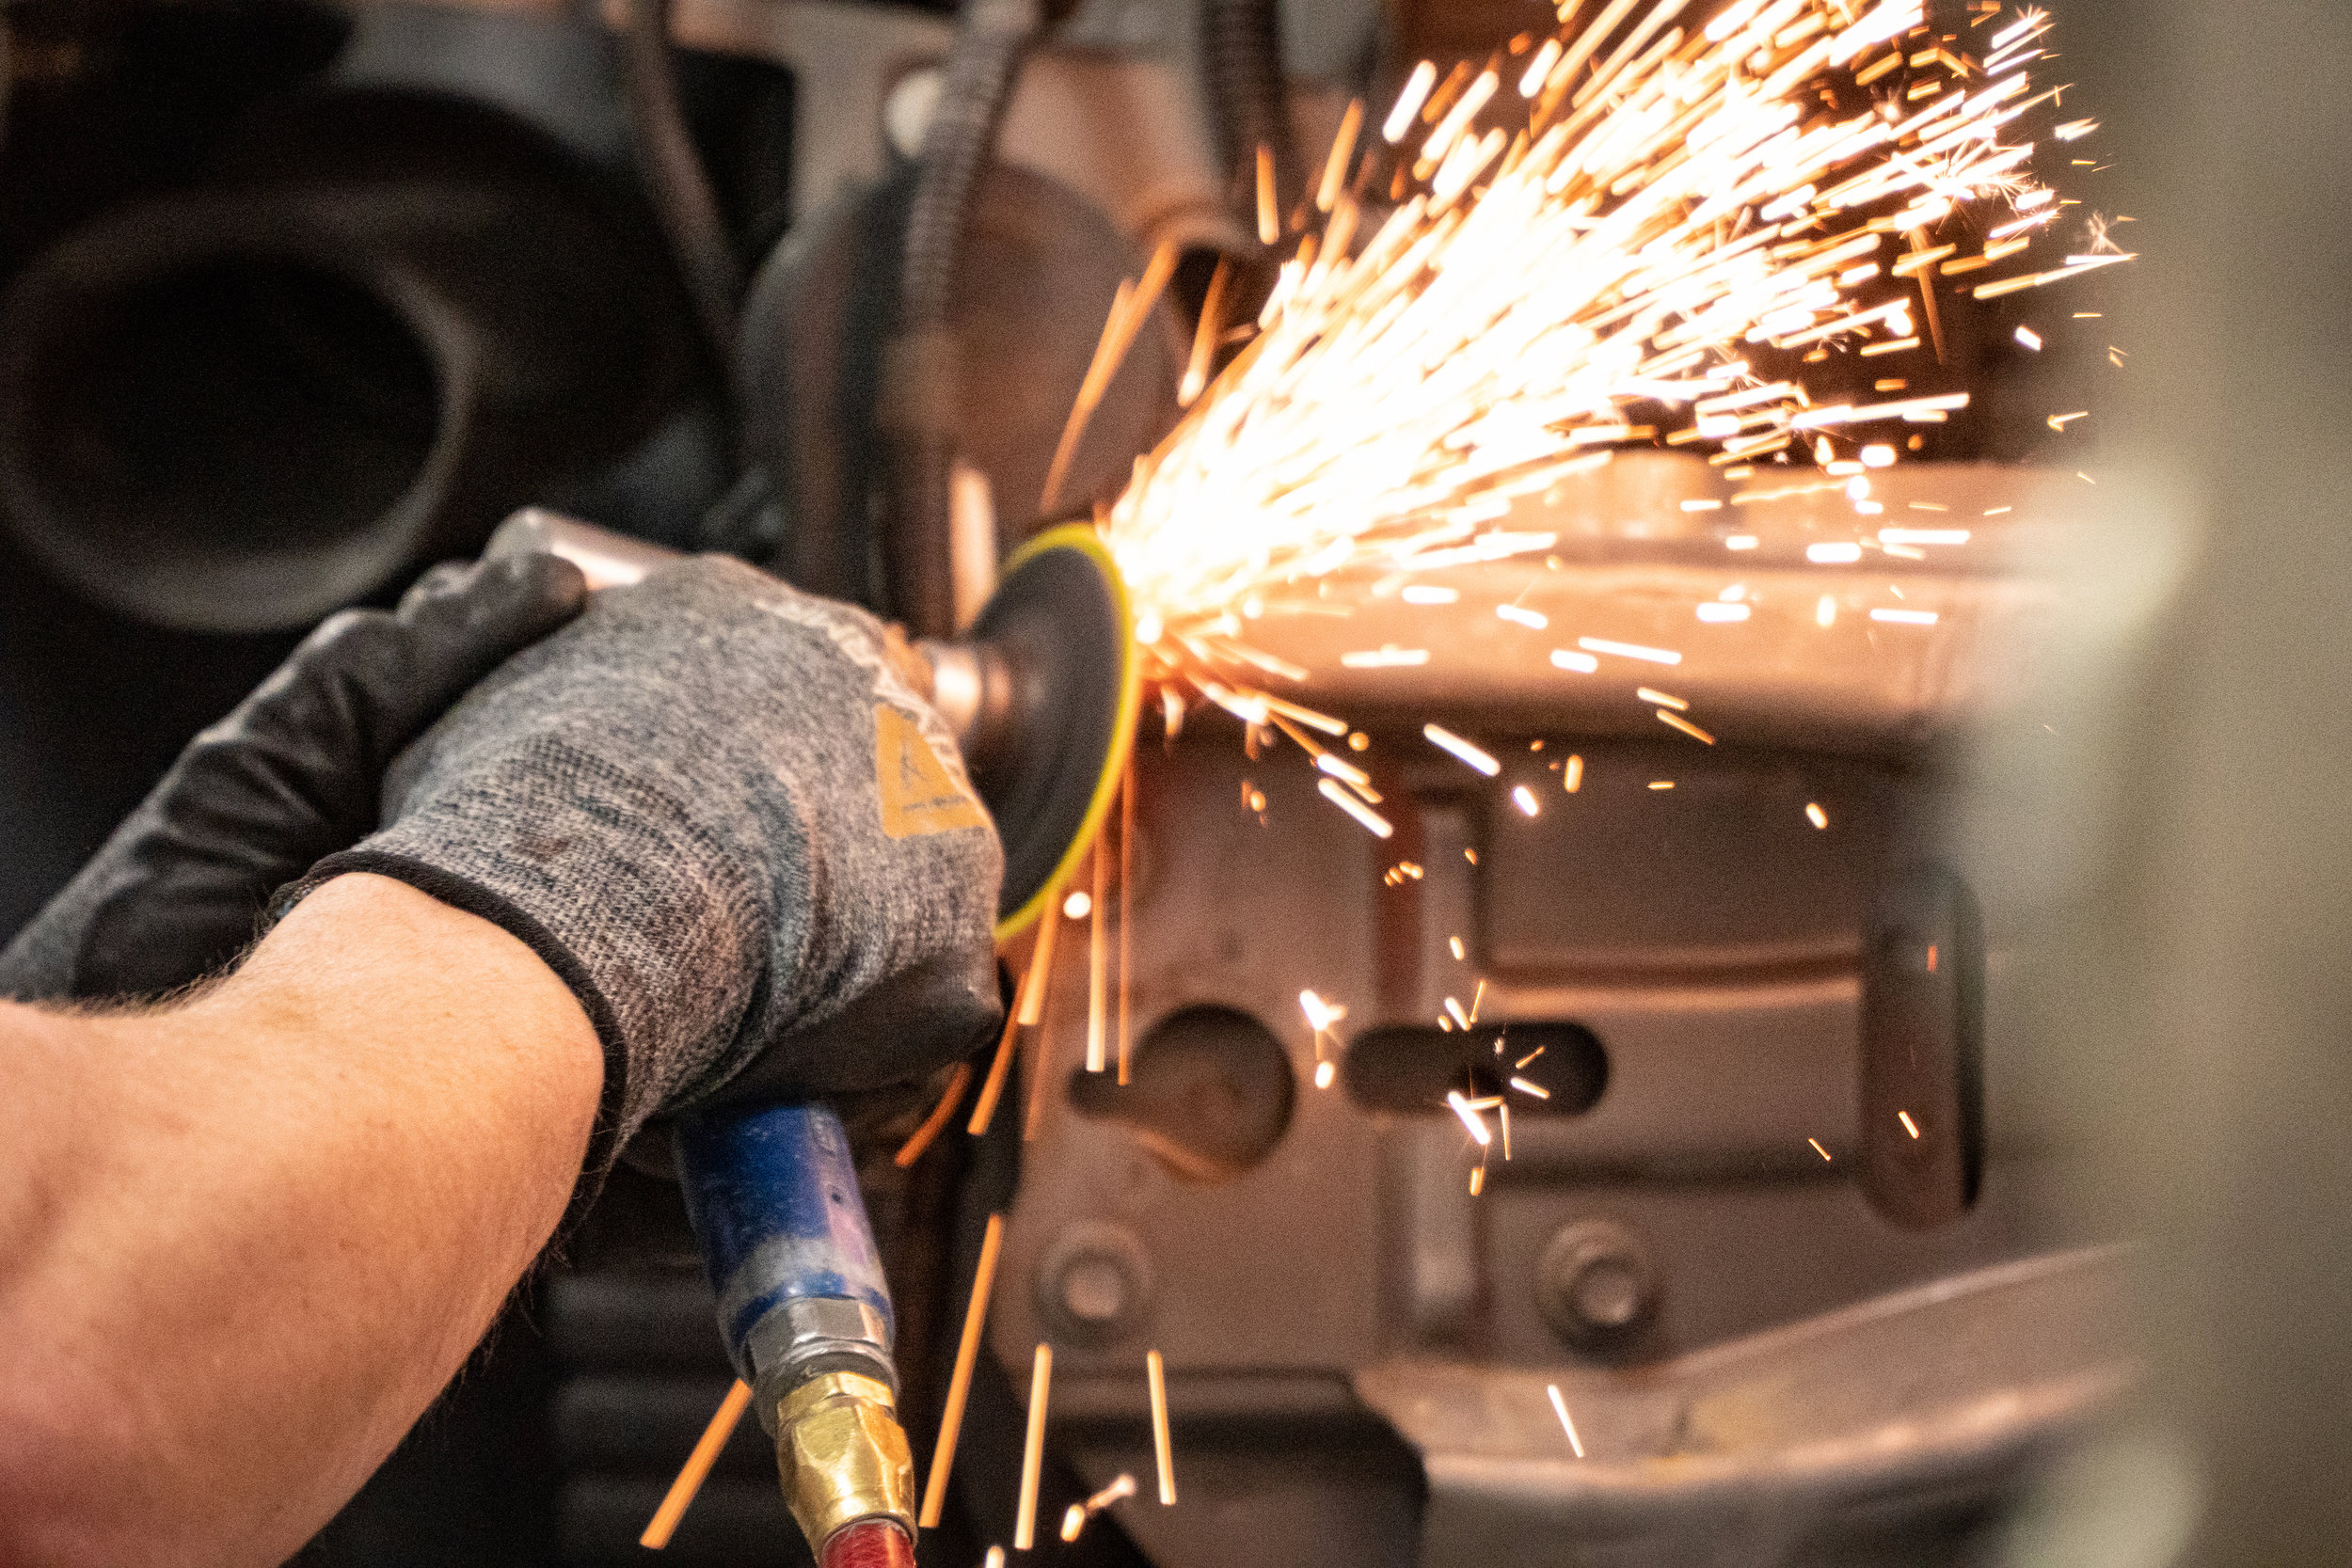 the process - Are you unsure of what to expect during the repair process? Click below for a detailed description of what you can expect during your vehicle repair.